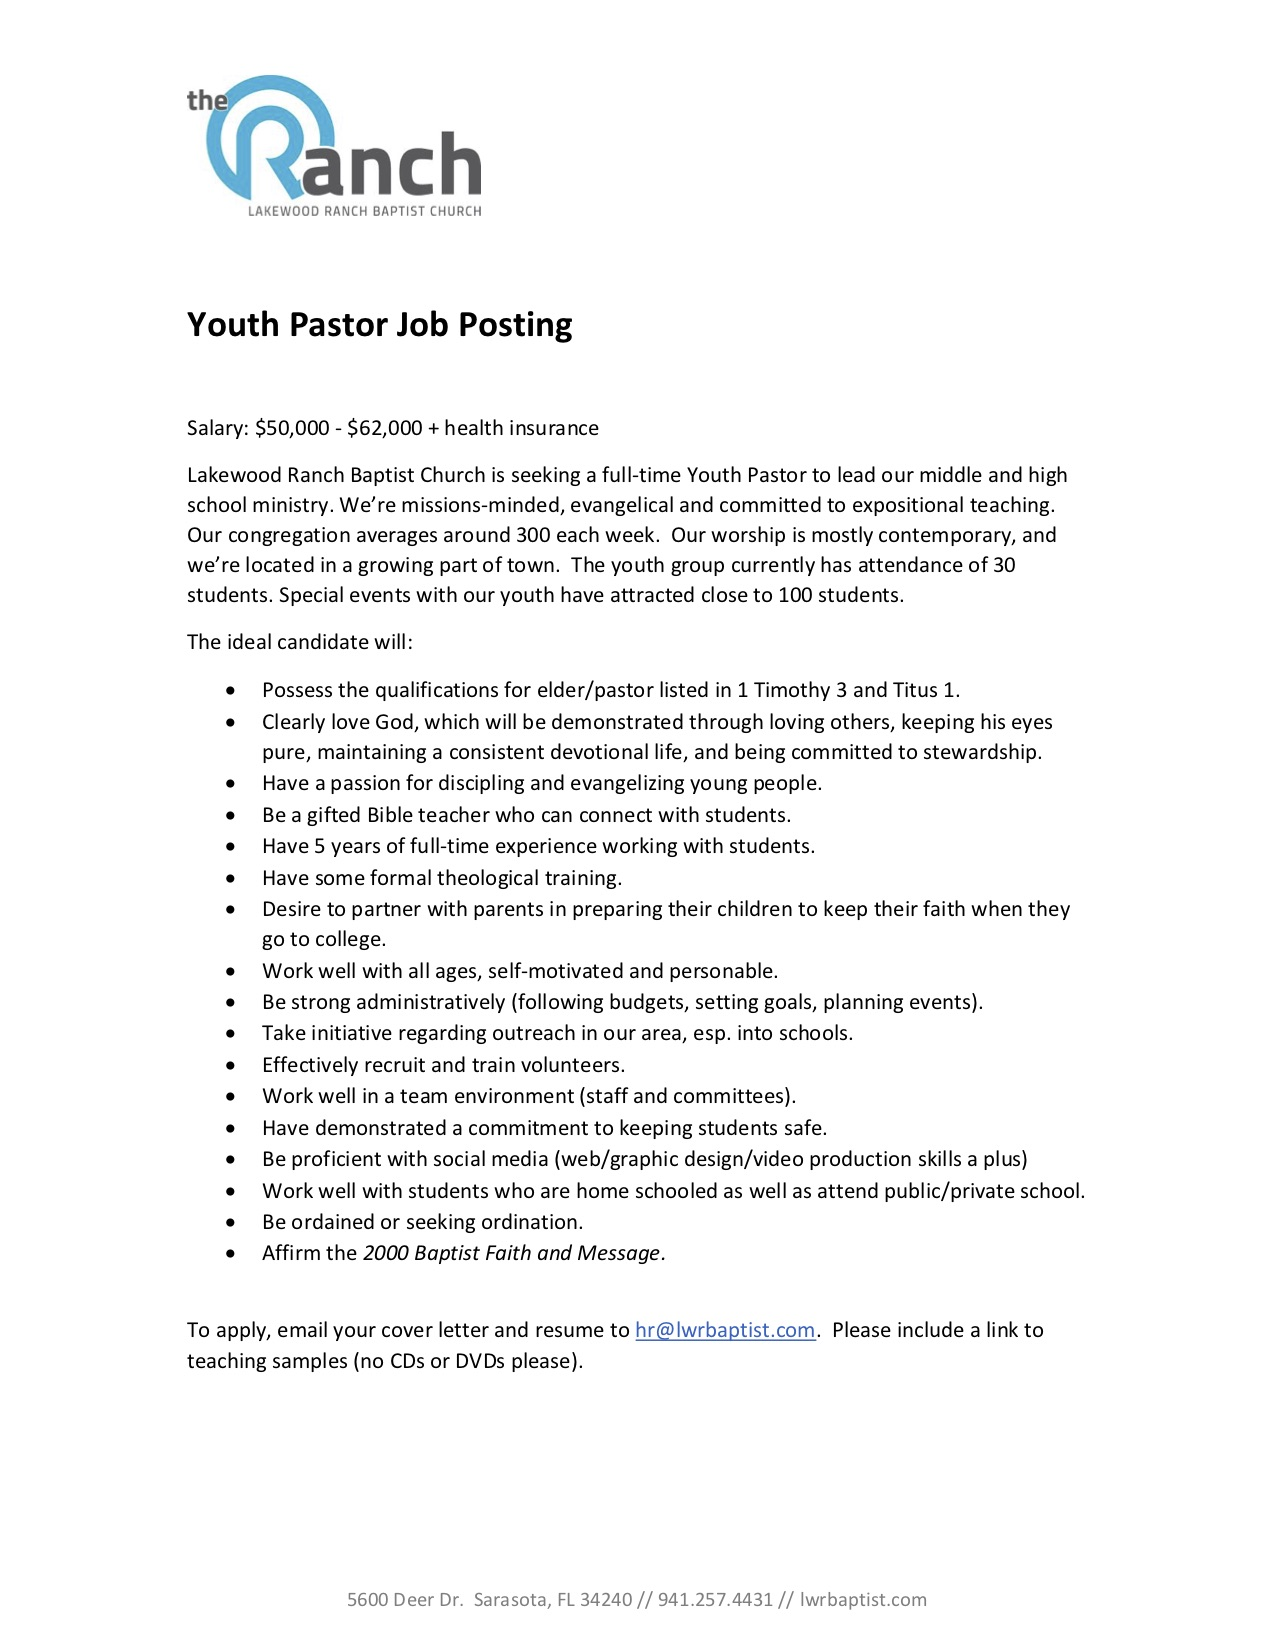 Youth Pastor Job Posting | Central Kentucky Network of Baptists